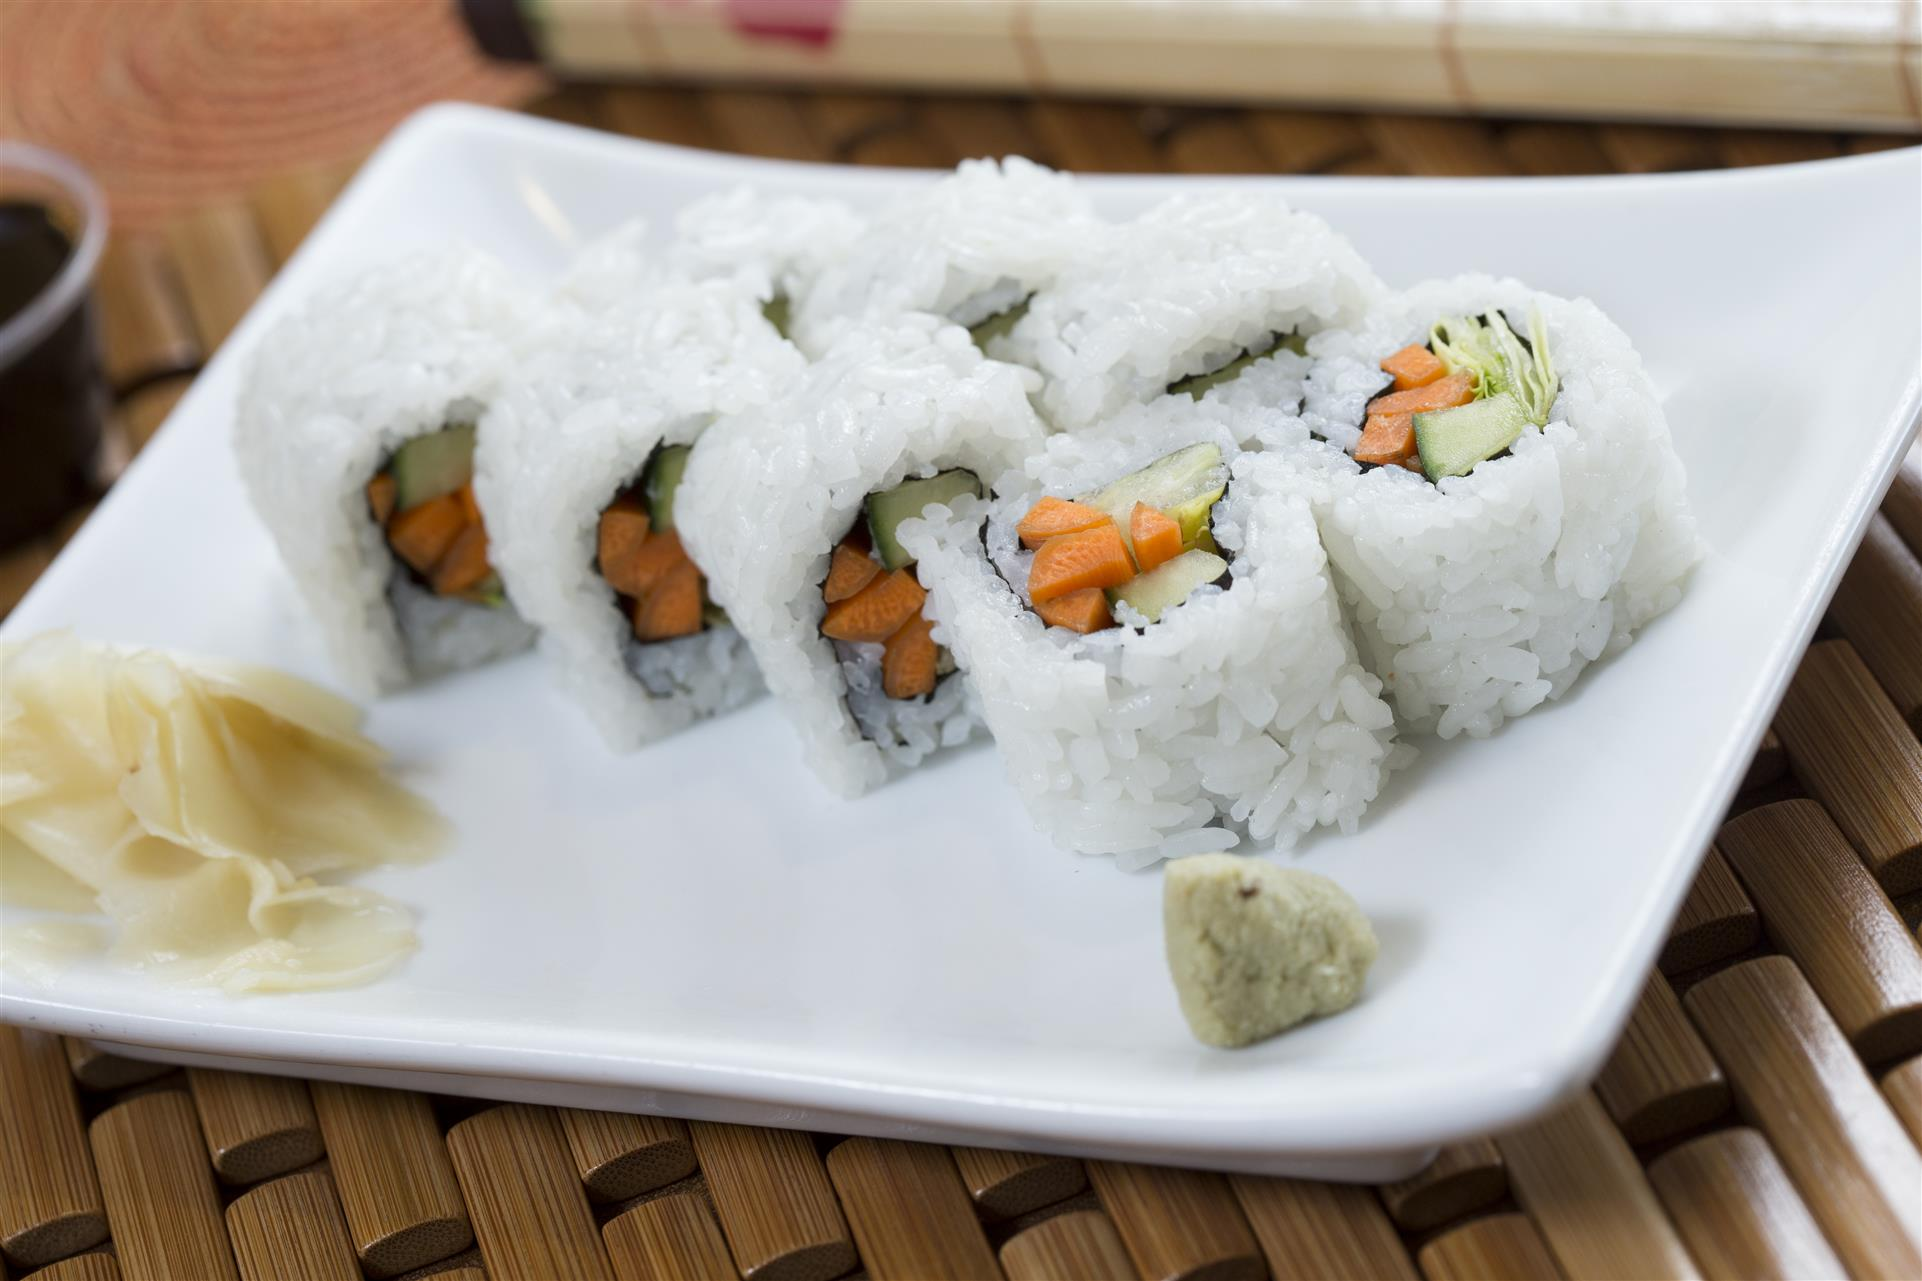 sushi roll on a plate with carrots and cucumbers with a side of ginger and wasabi